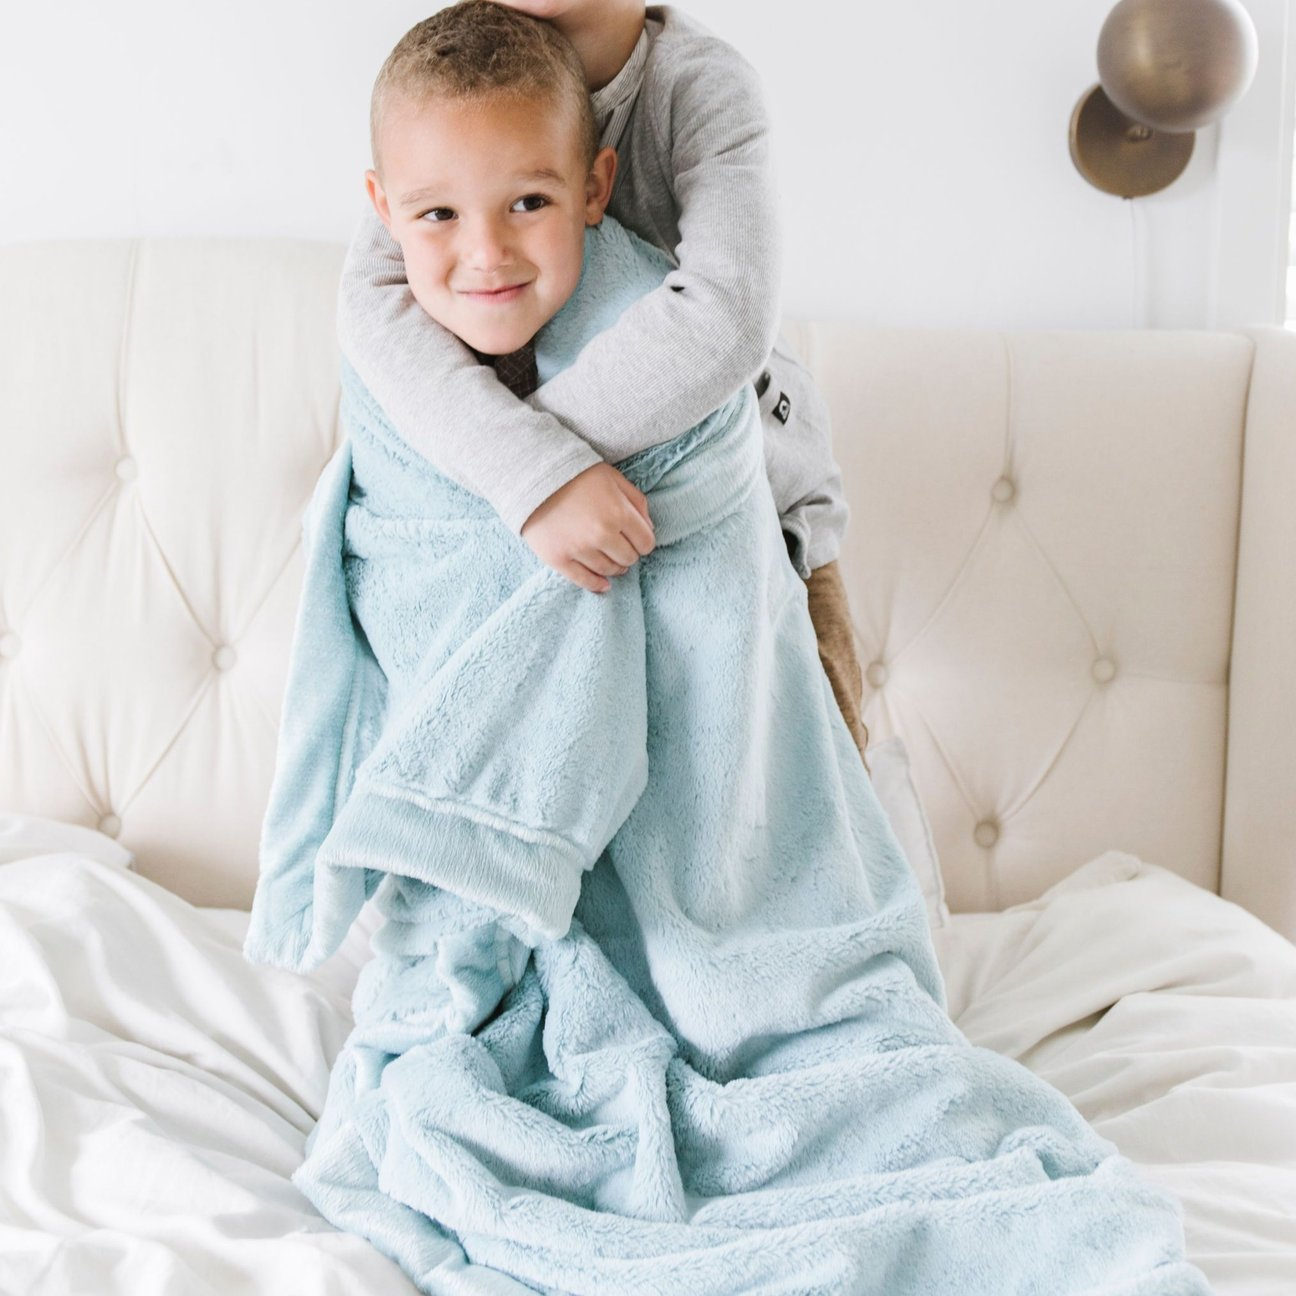 Dew Lush Blanket - Toddler